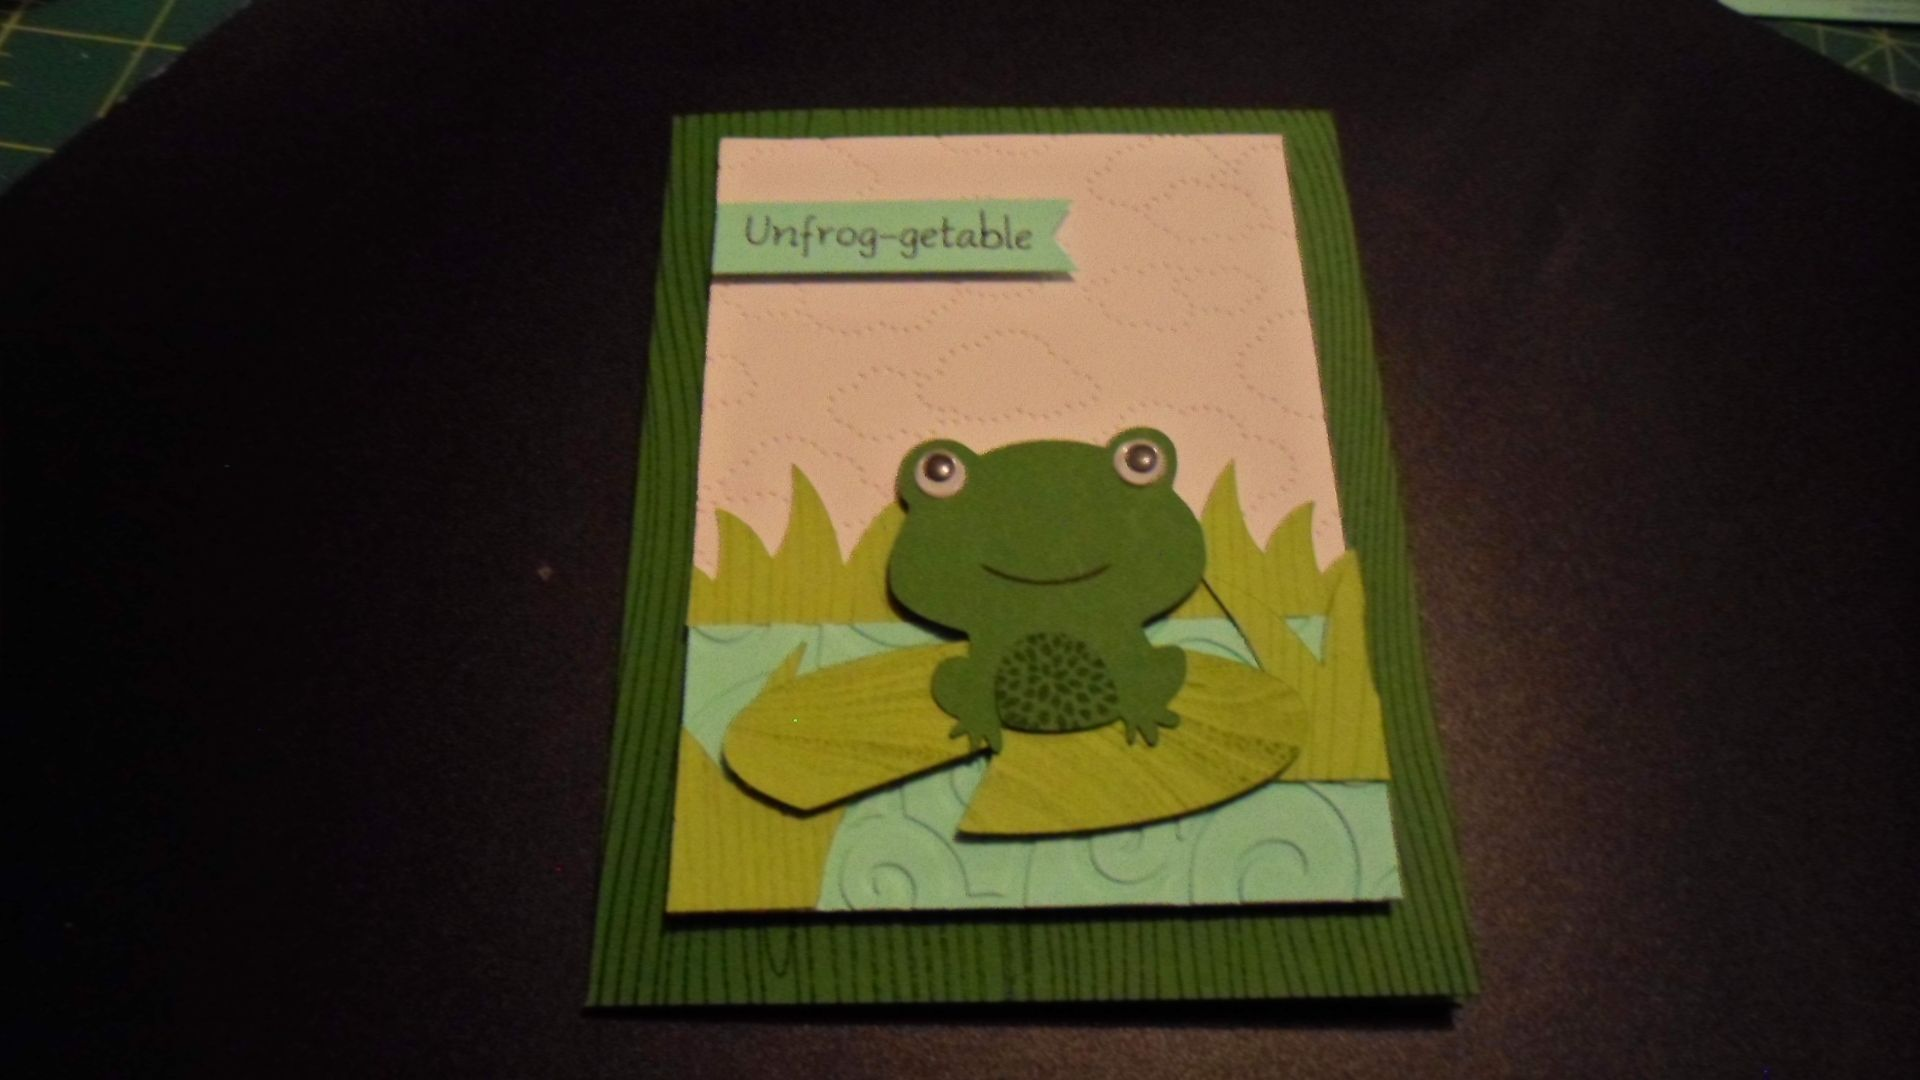 Unfrog-getable card, Cricut Expression, Create a Critter, Bazzill card stock, Stampin Up ink, Embossing folders, back ground stamps, google eyes